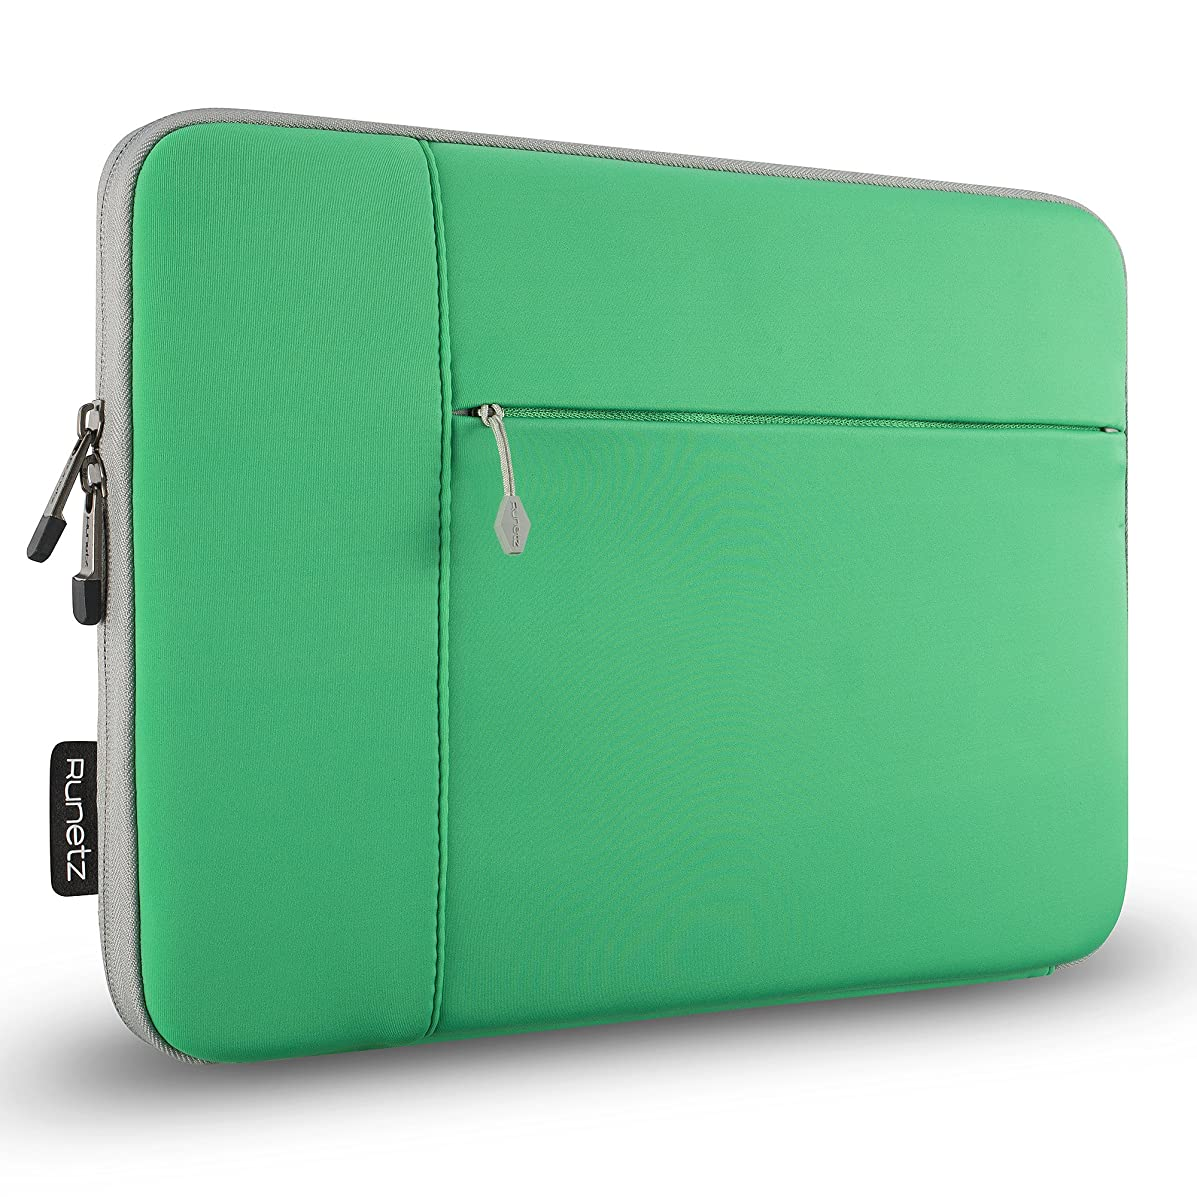 Runetz MacBook 12 inch Sleeve Neoprene Case for A1534 Retina Display, Release 2017 2016 2015 - Perfect Mac Laptop Bag Cover with Accessory Pocket - Green-Gray